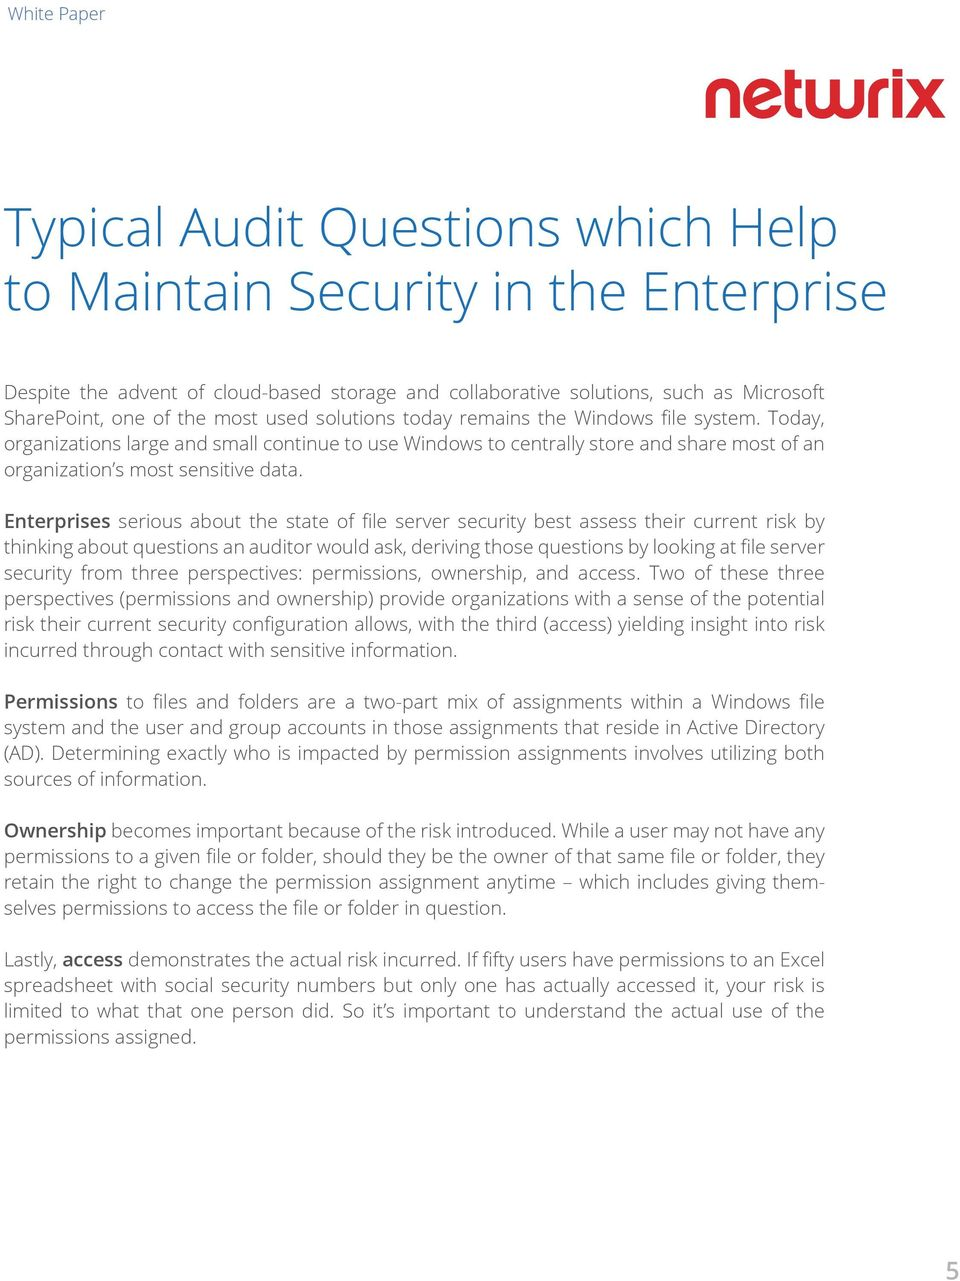 Enterprises serious about the state of file server security best assess their current risk by thinking about questions an auditor would ask, deriving those questions by looking at file server